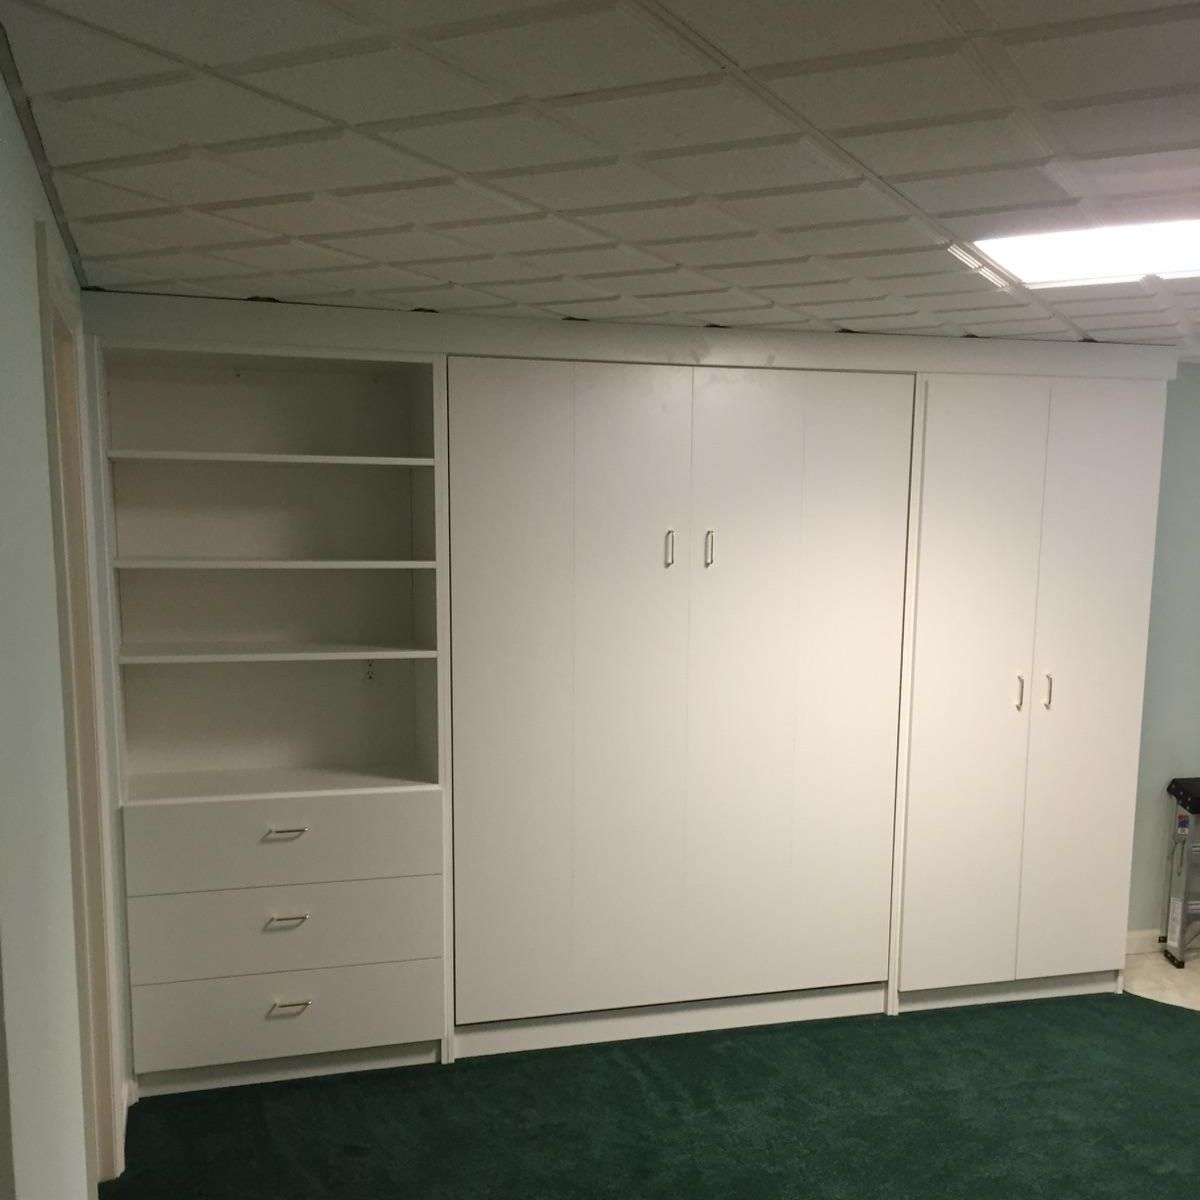 Chattanooga Wall Beds Closet System